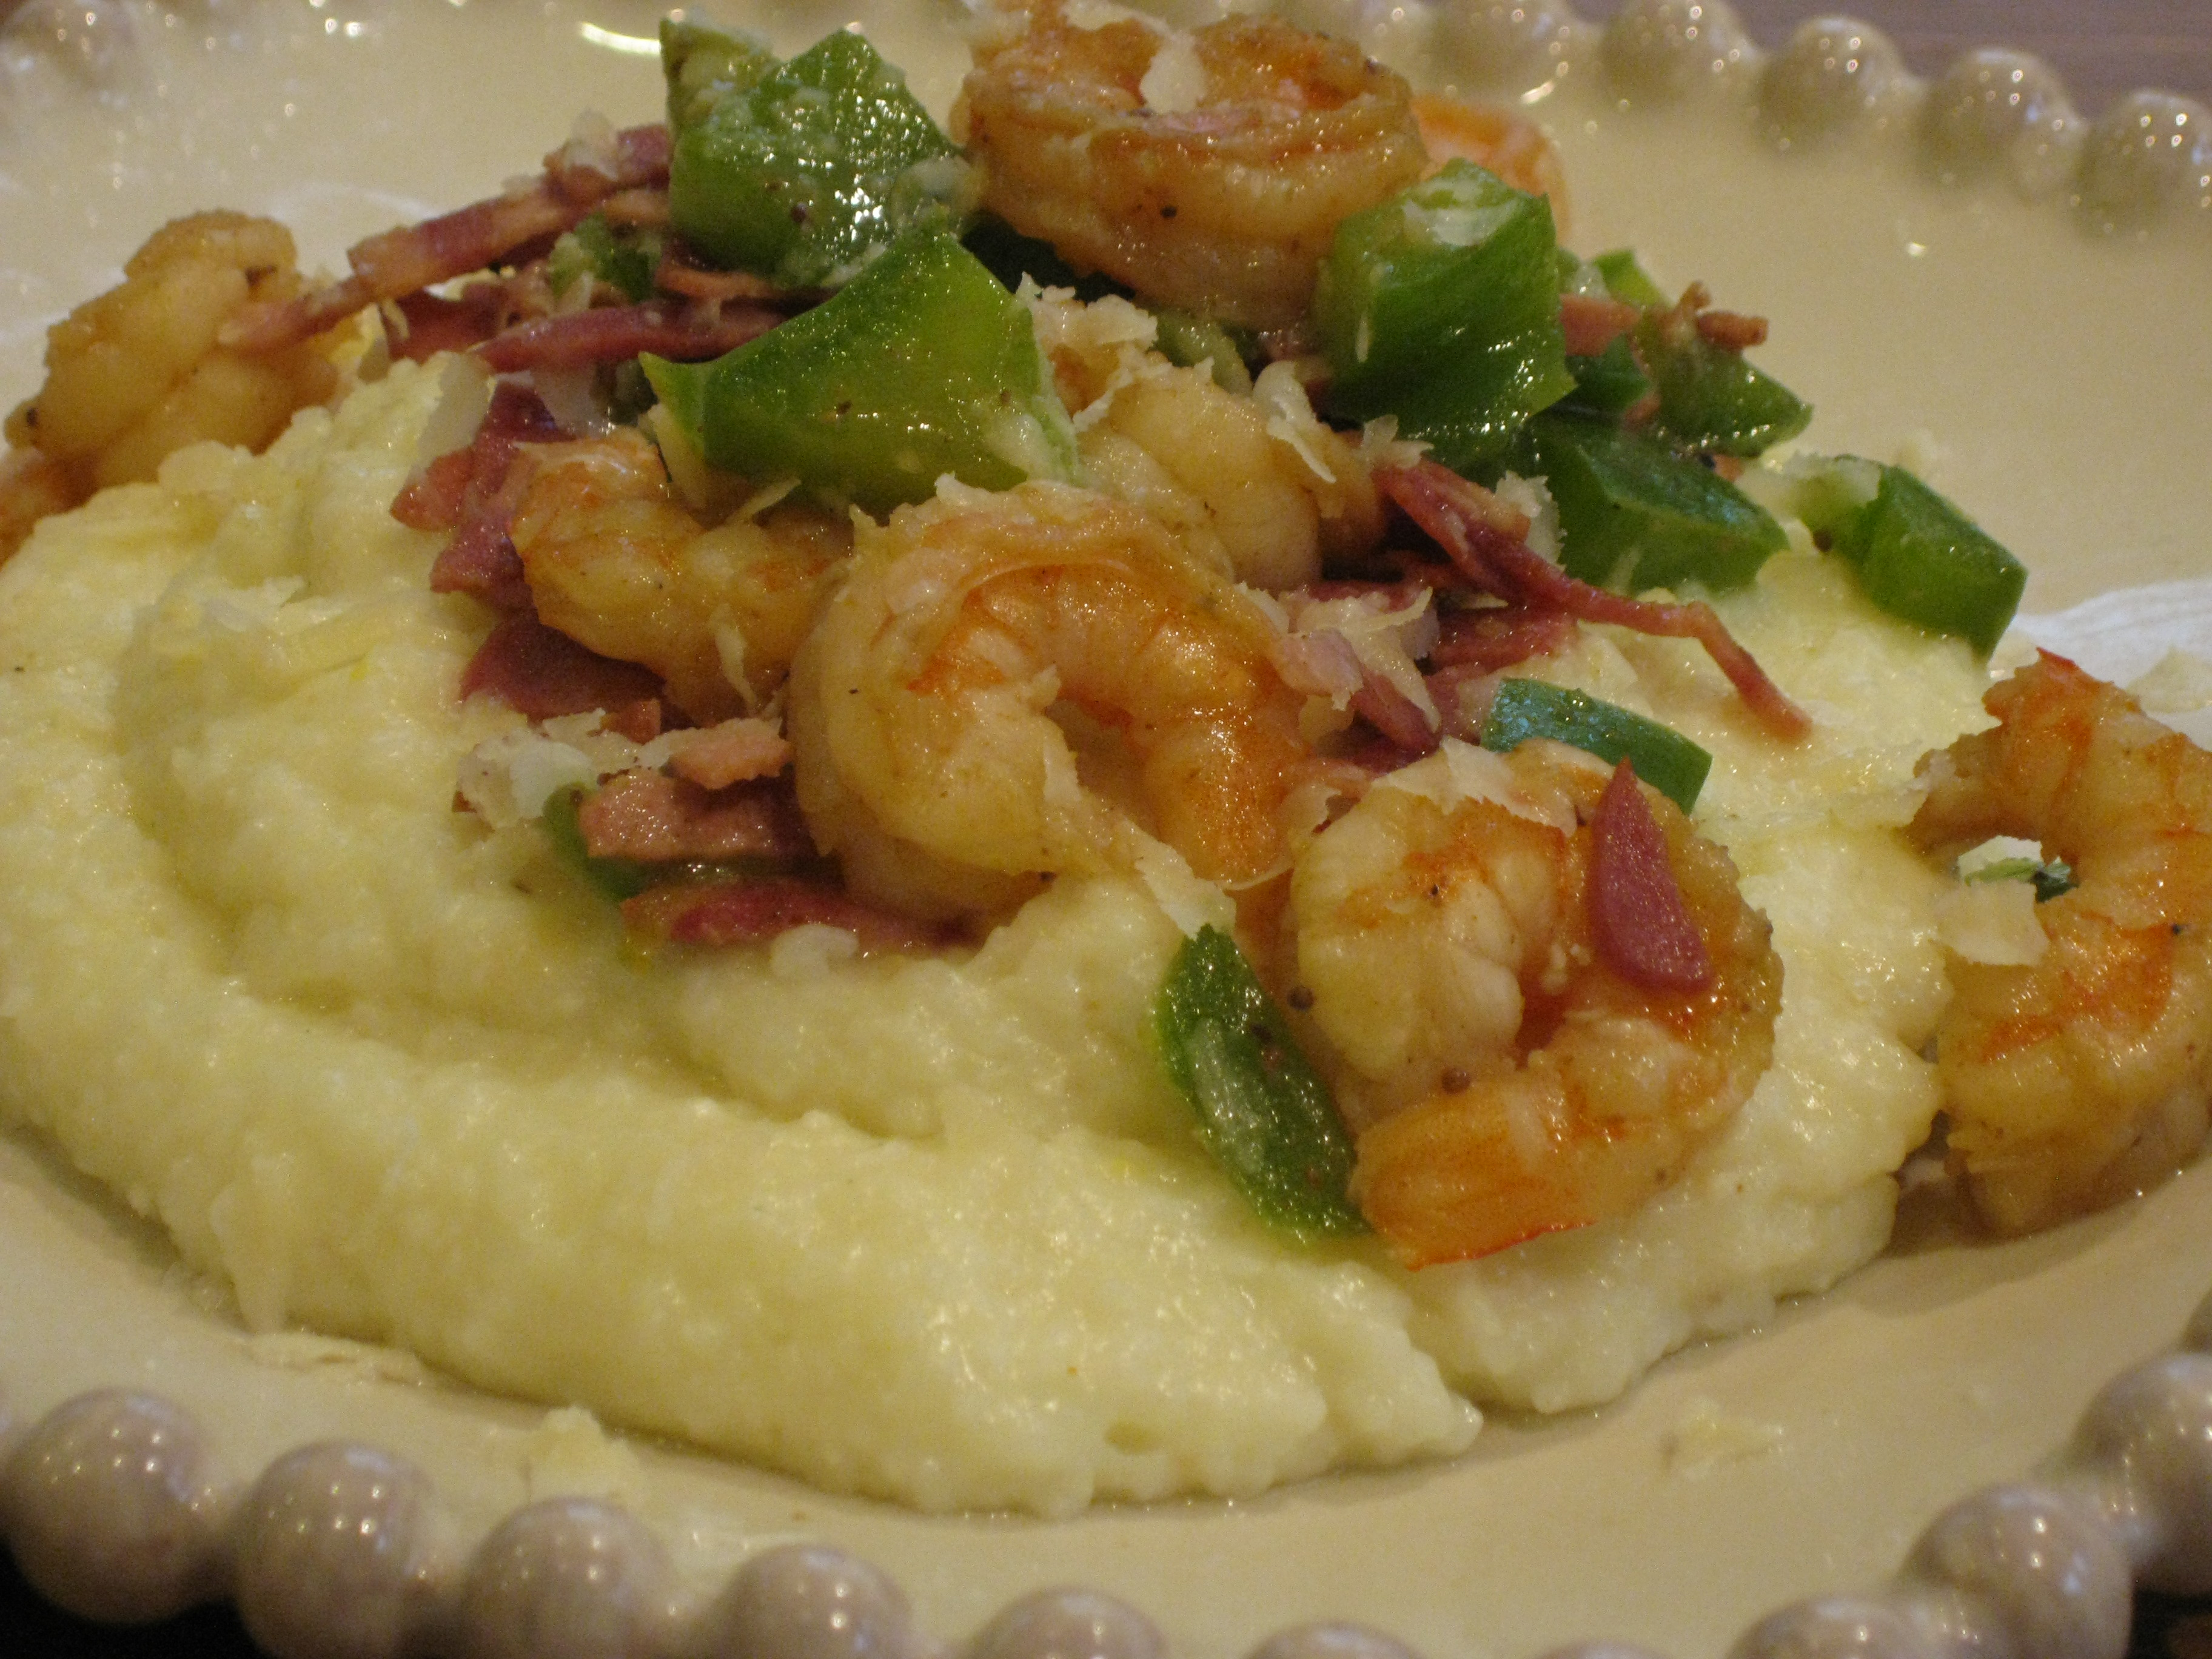 ... creamy parmesan grits recipe food wine creamy parmesan grits